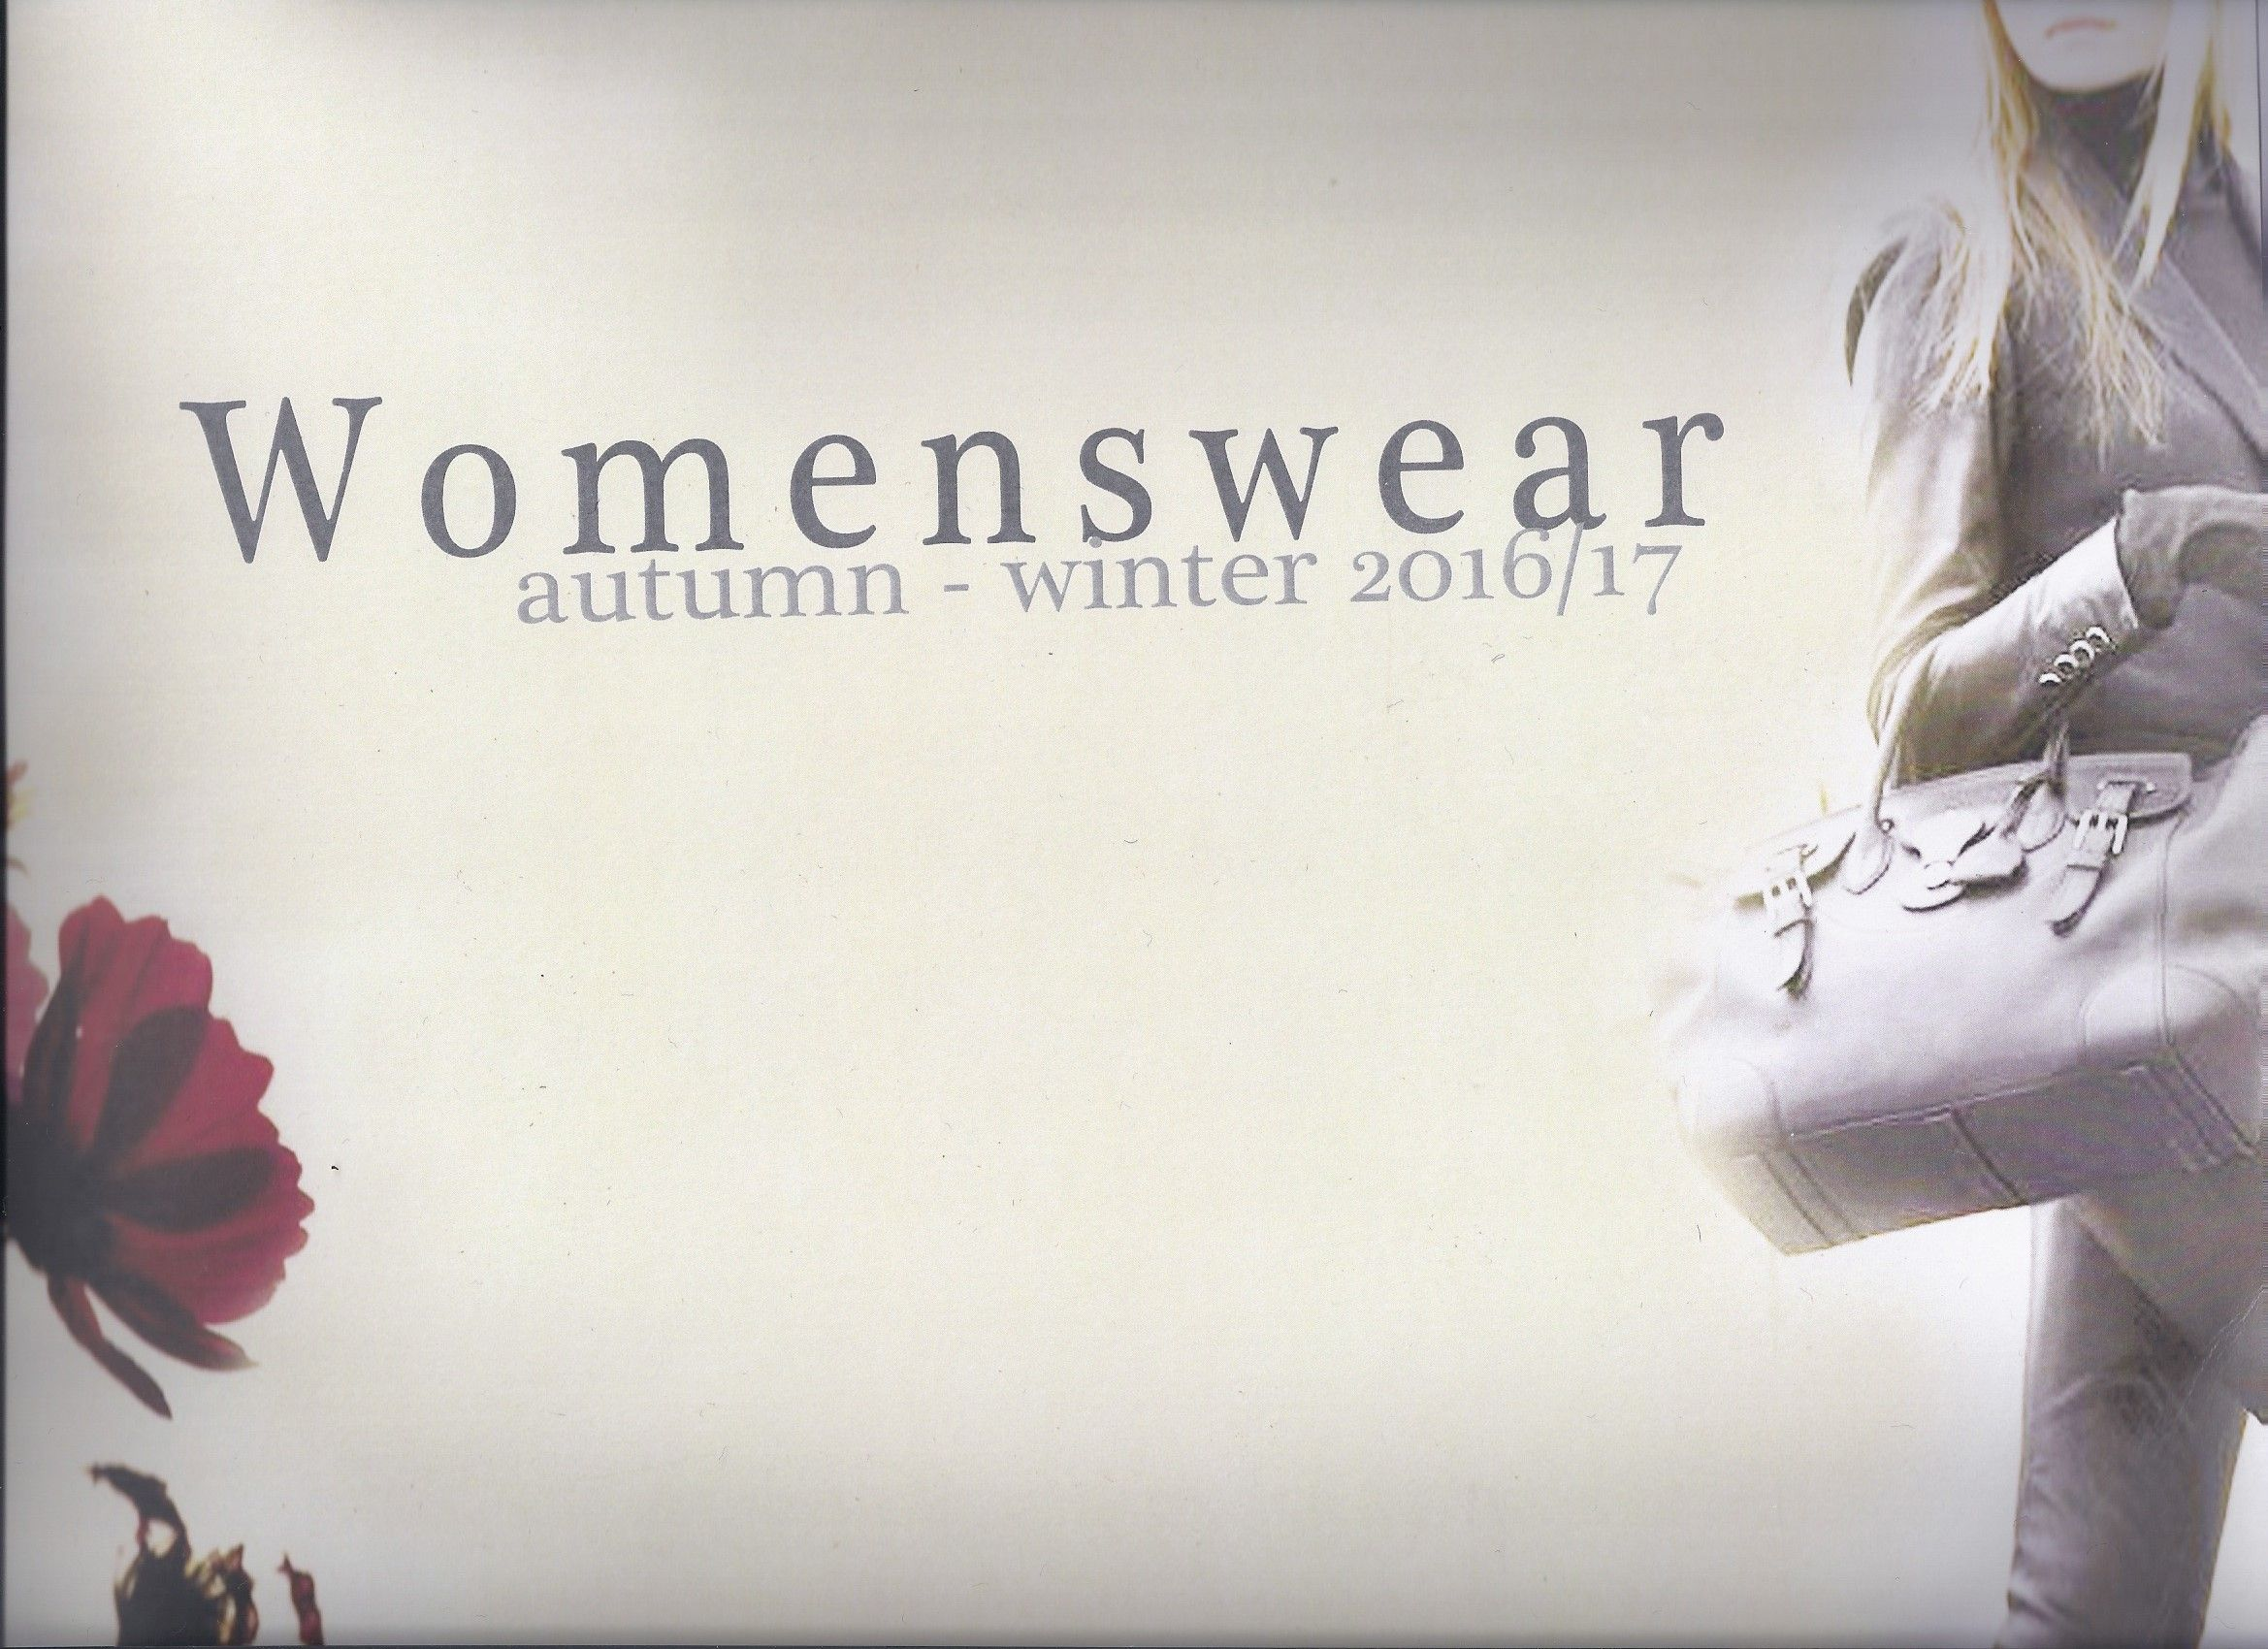 The fabric trend book shows the general trend on woven womenswear: textured, fancy and plain fabrics in different fibres.